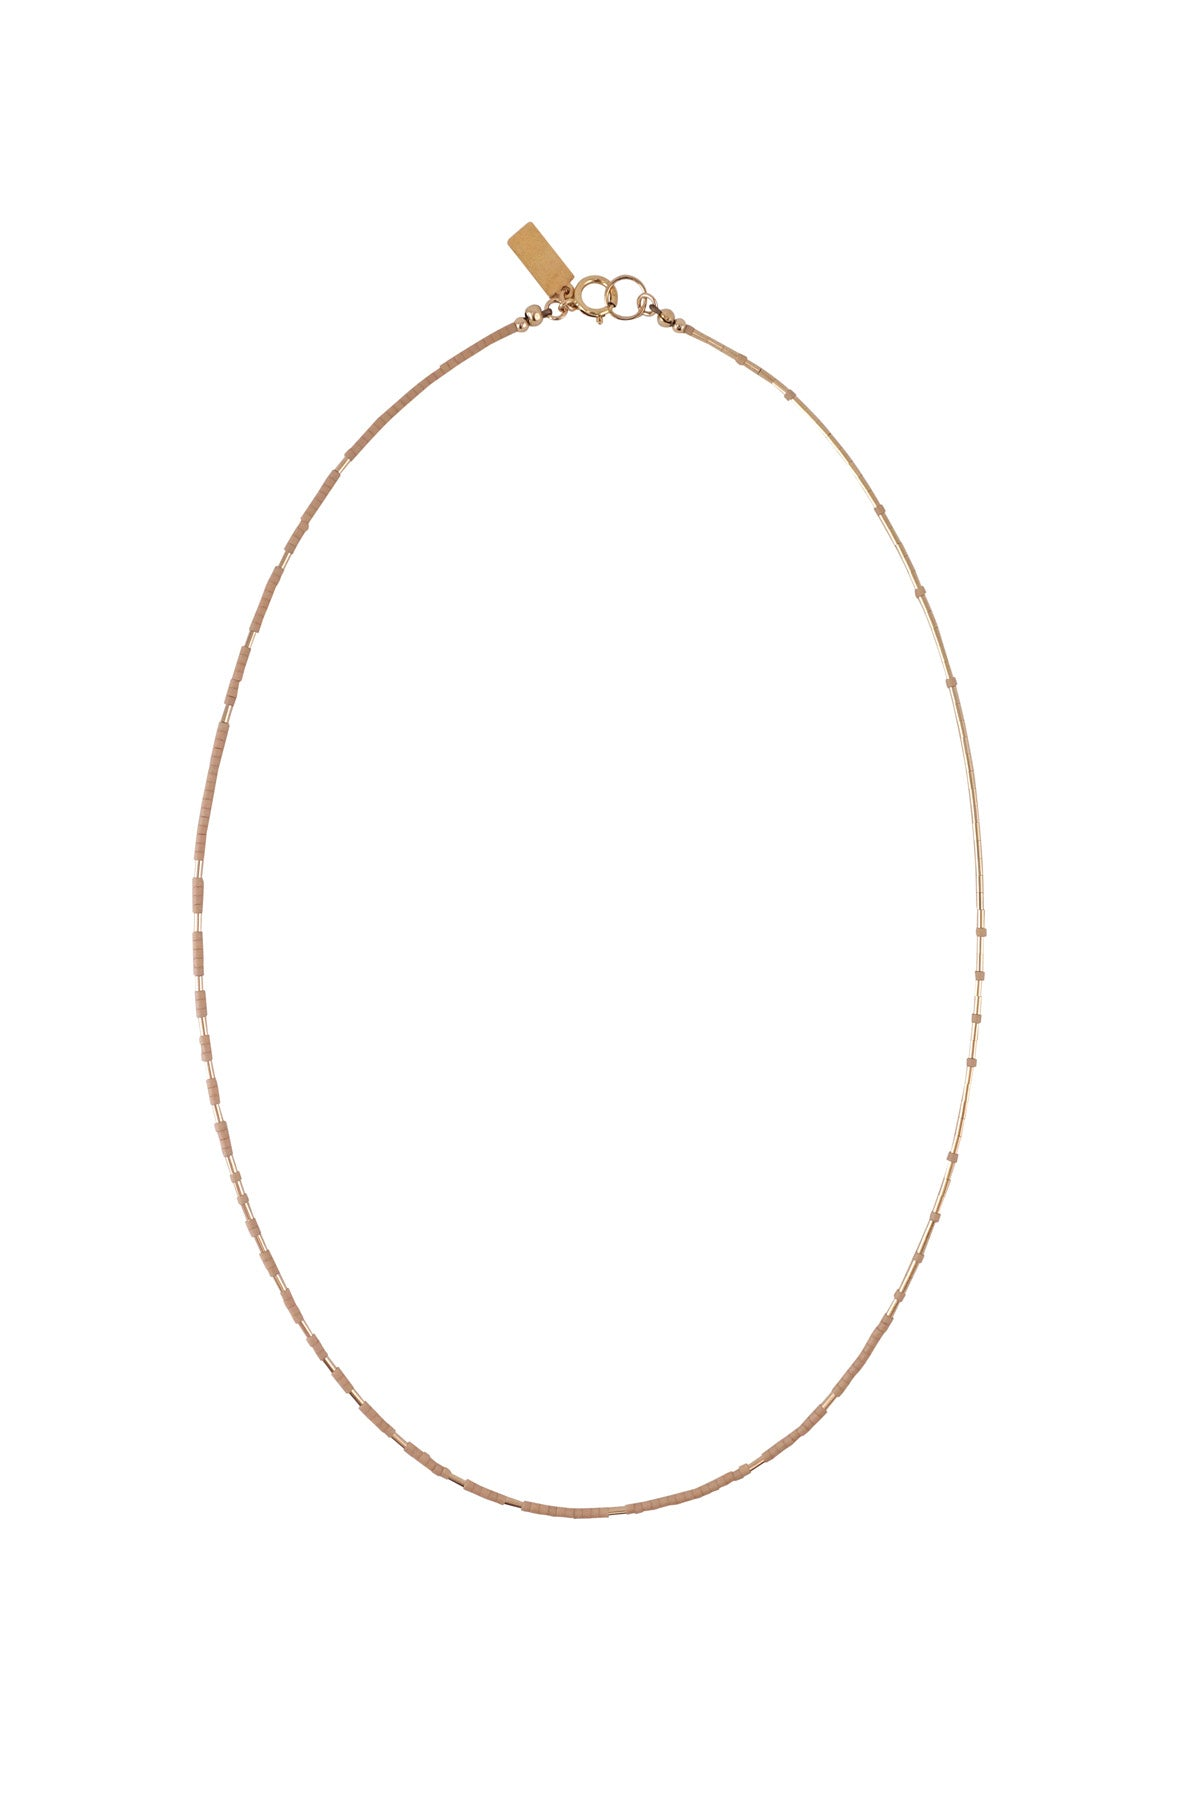 Abacus Row Arche Necklace